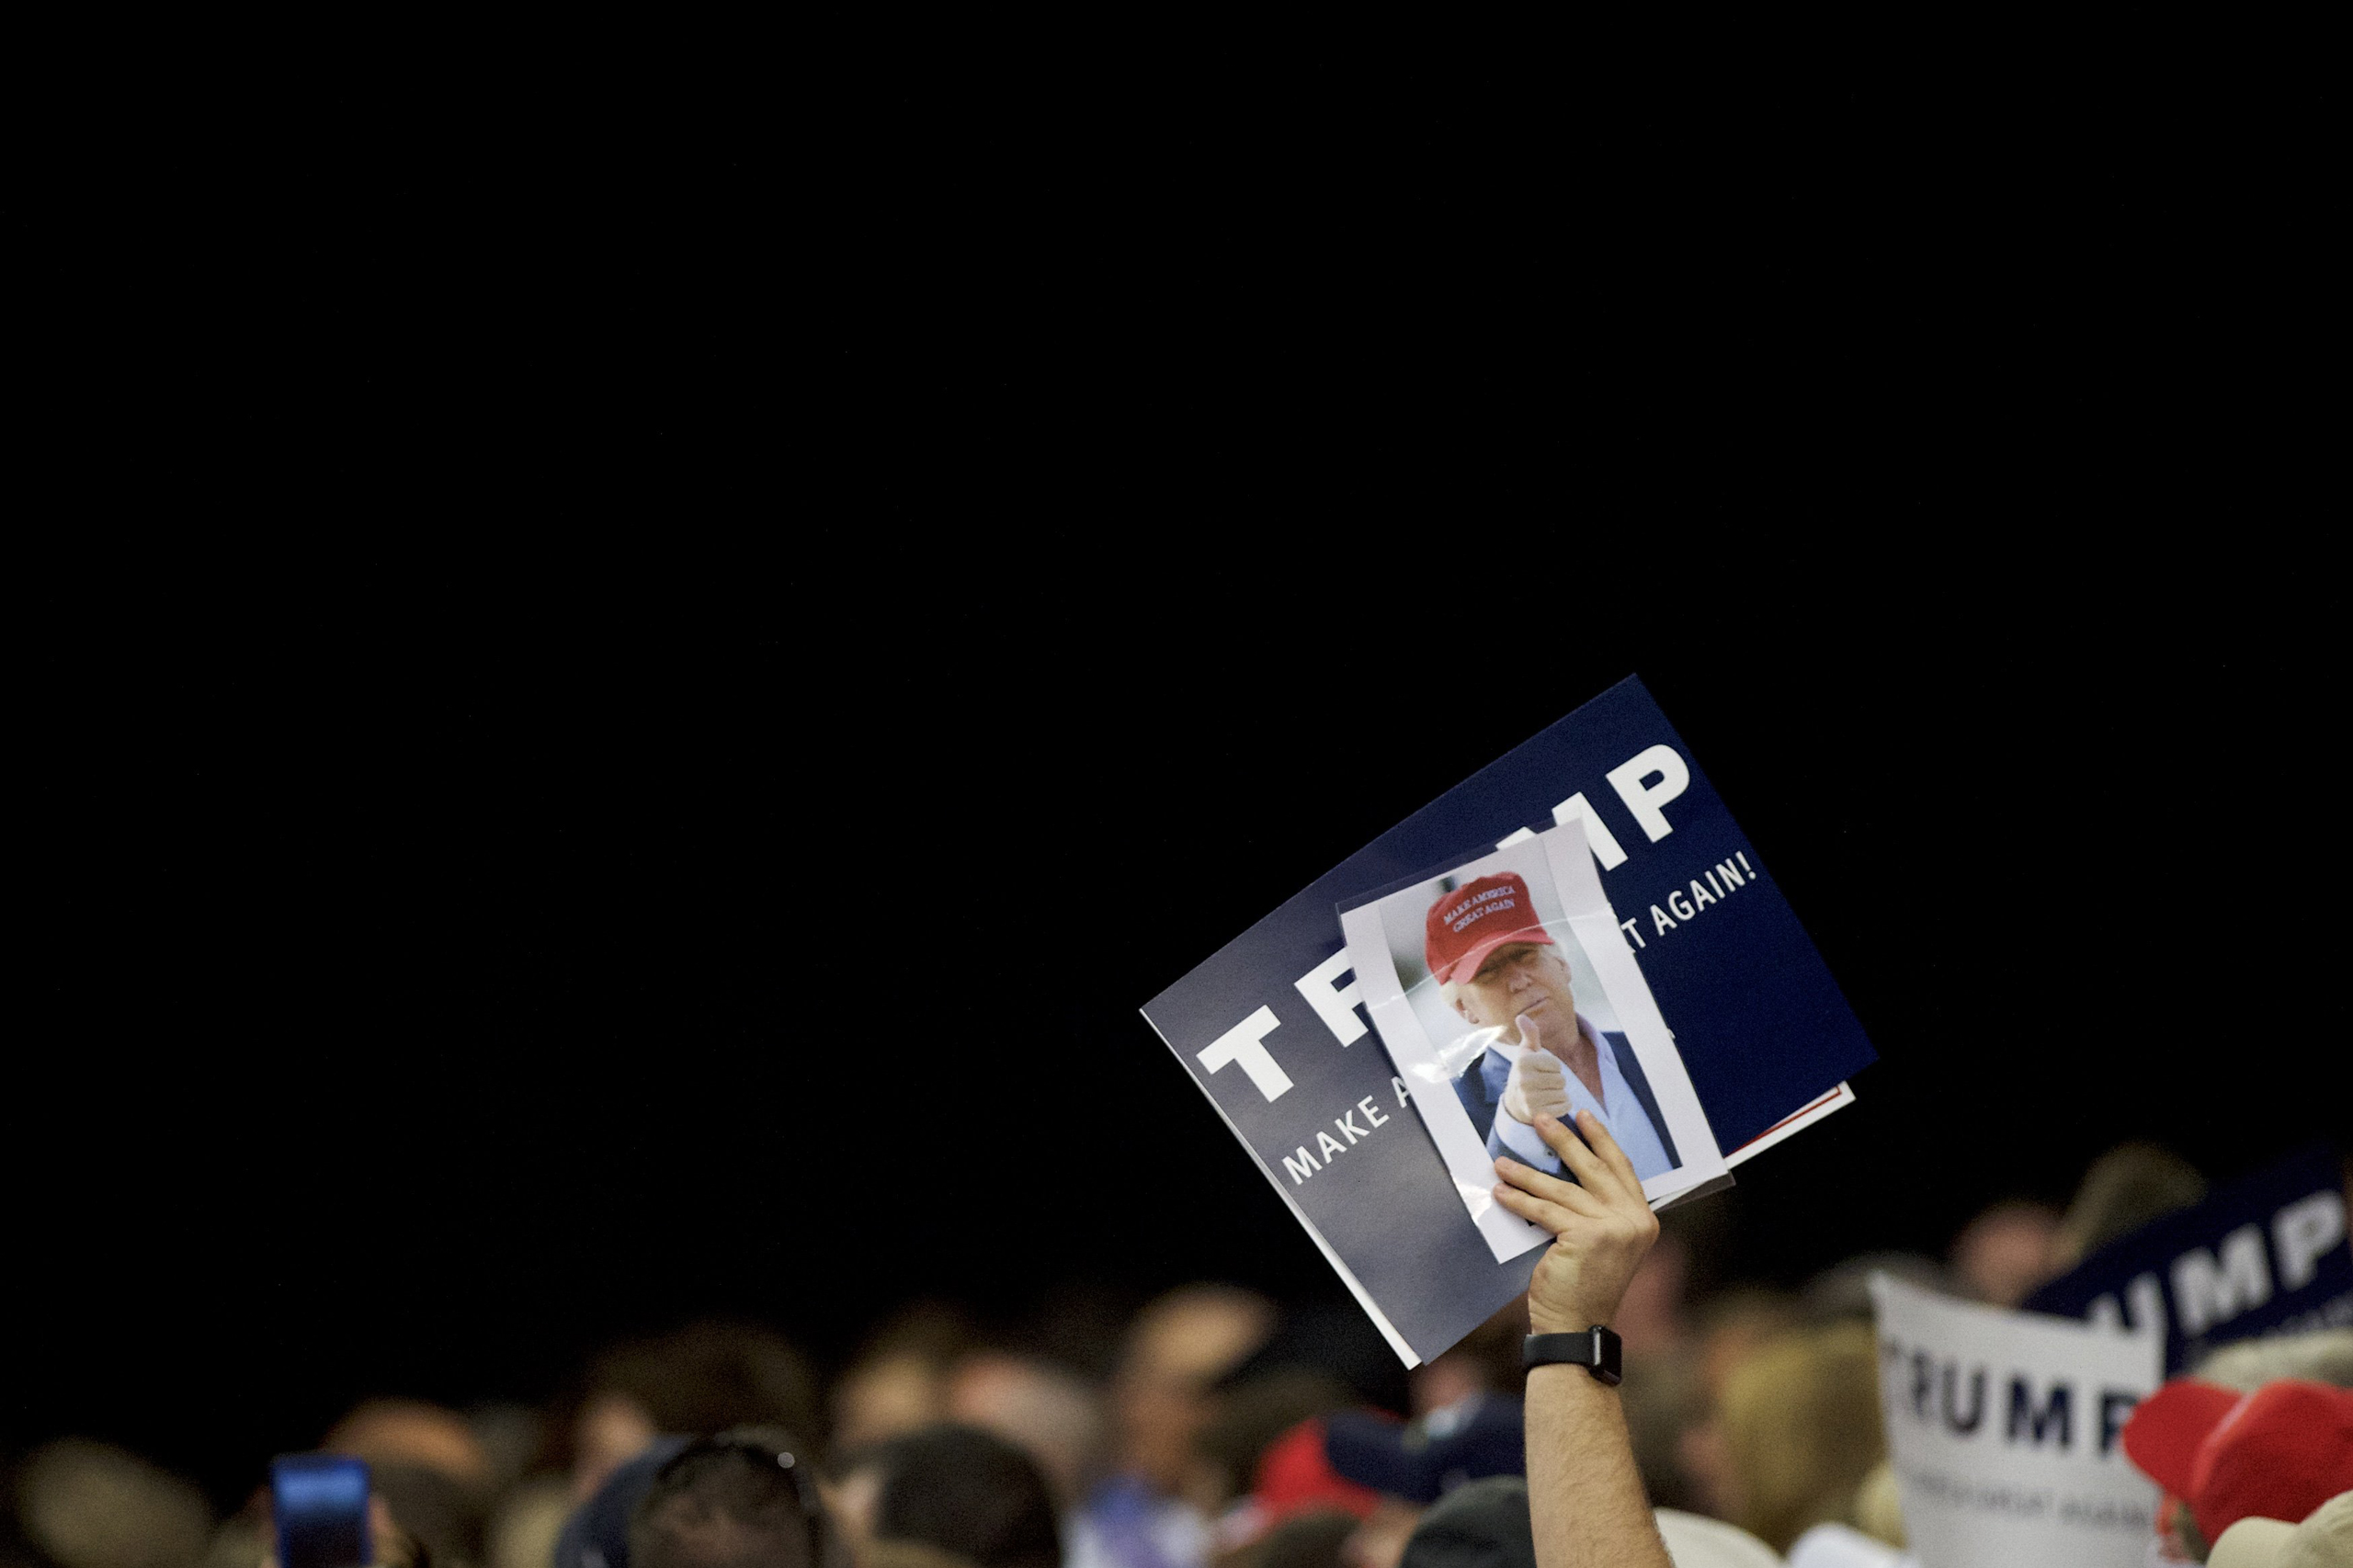 A Donald Trump supporter during a rally at the Pennsylvania Farm Show Complex & Expo Center in Harrisburg, Pa., on April 21, 2016.